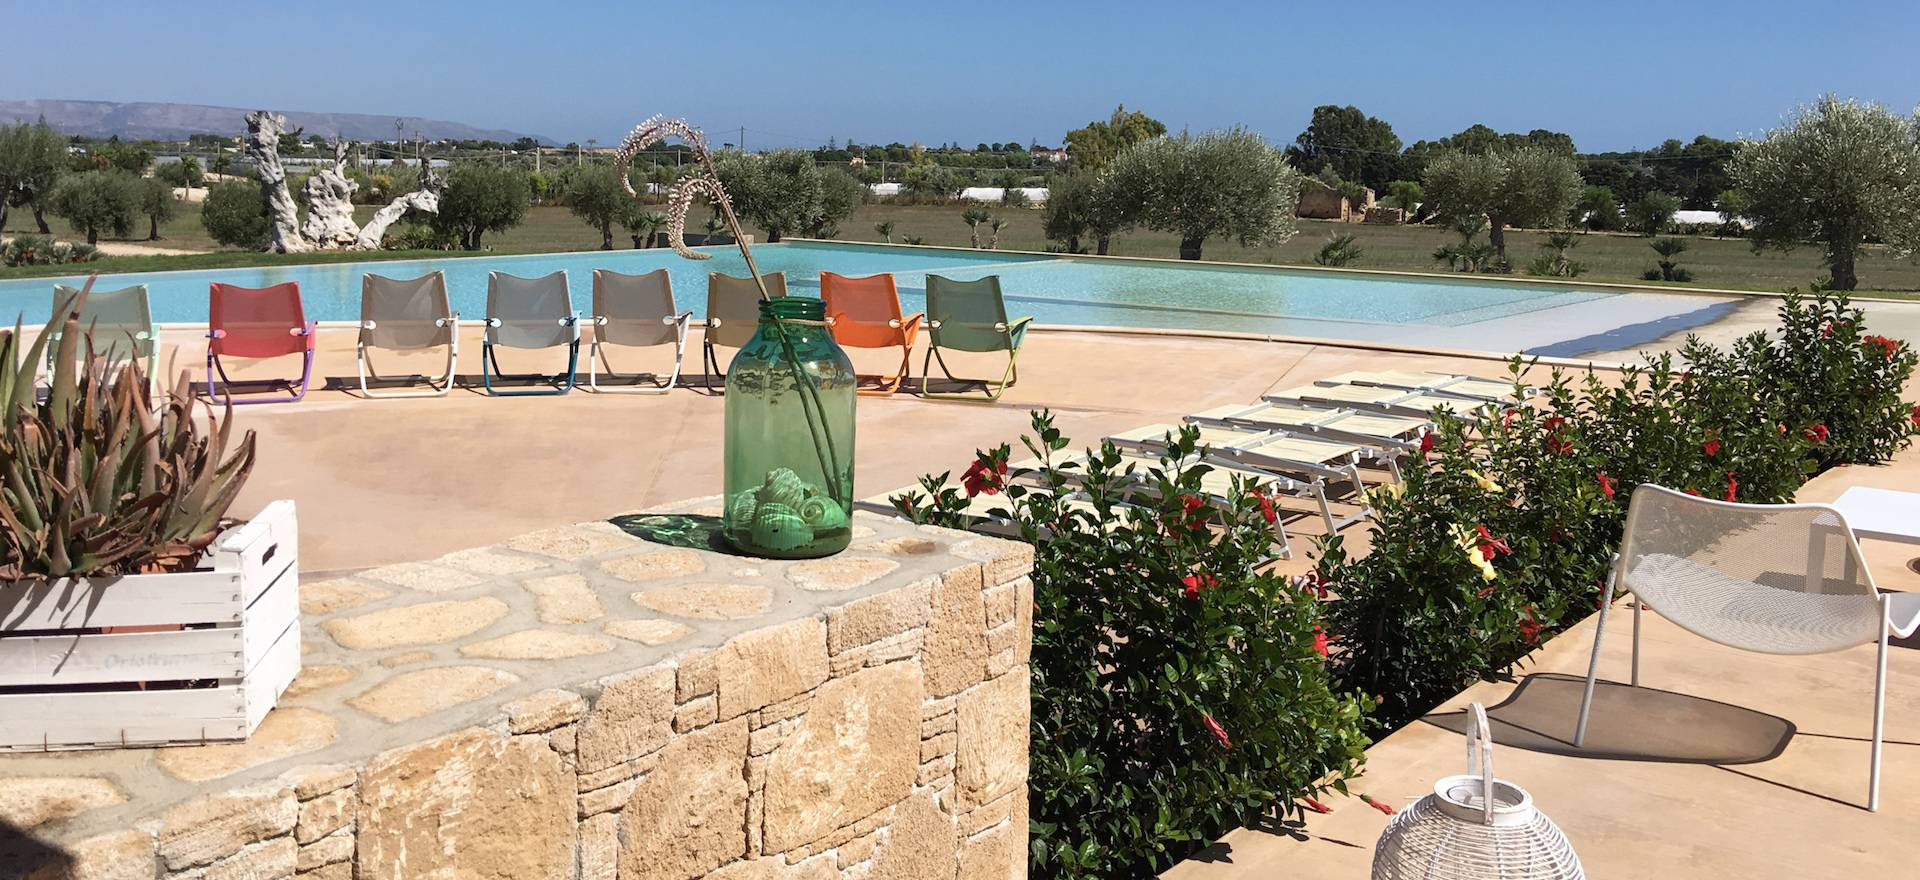 Agriturismo Sicilie Luxe agriturismo voor strandliefhebbers